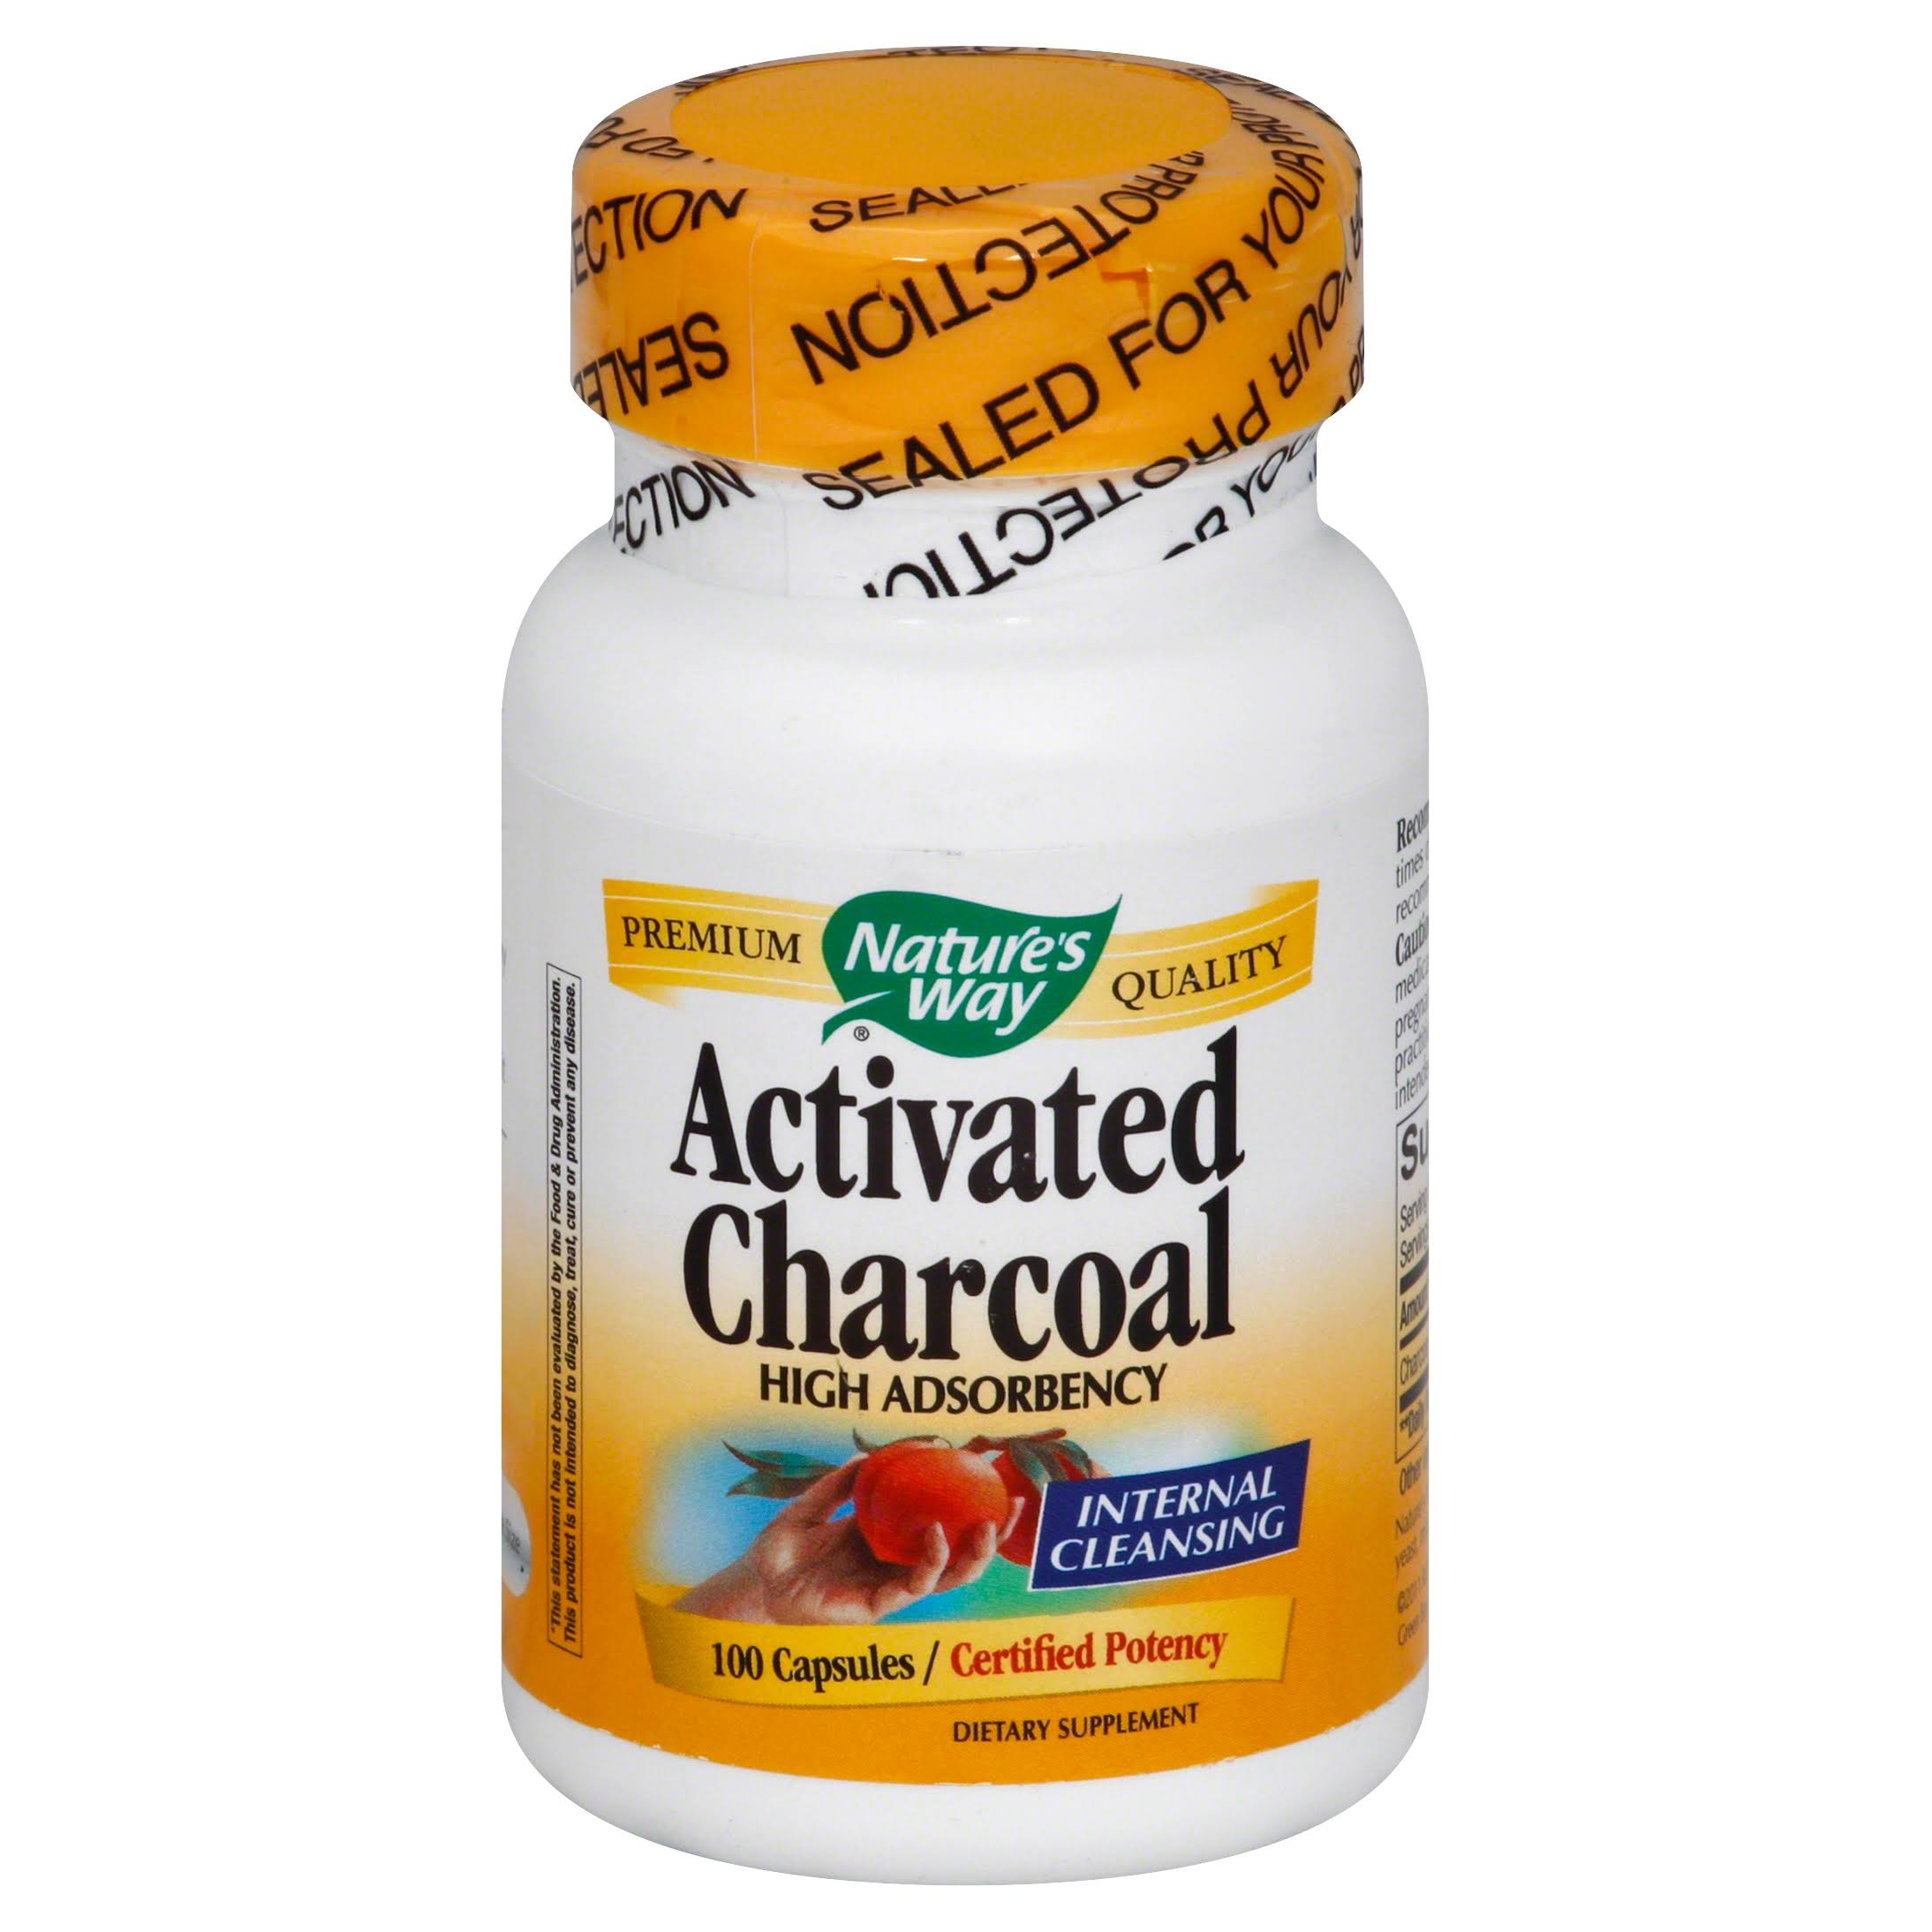 Nature's Way Activated Charcoal - 100 Capsules